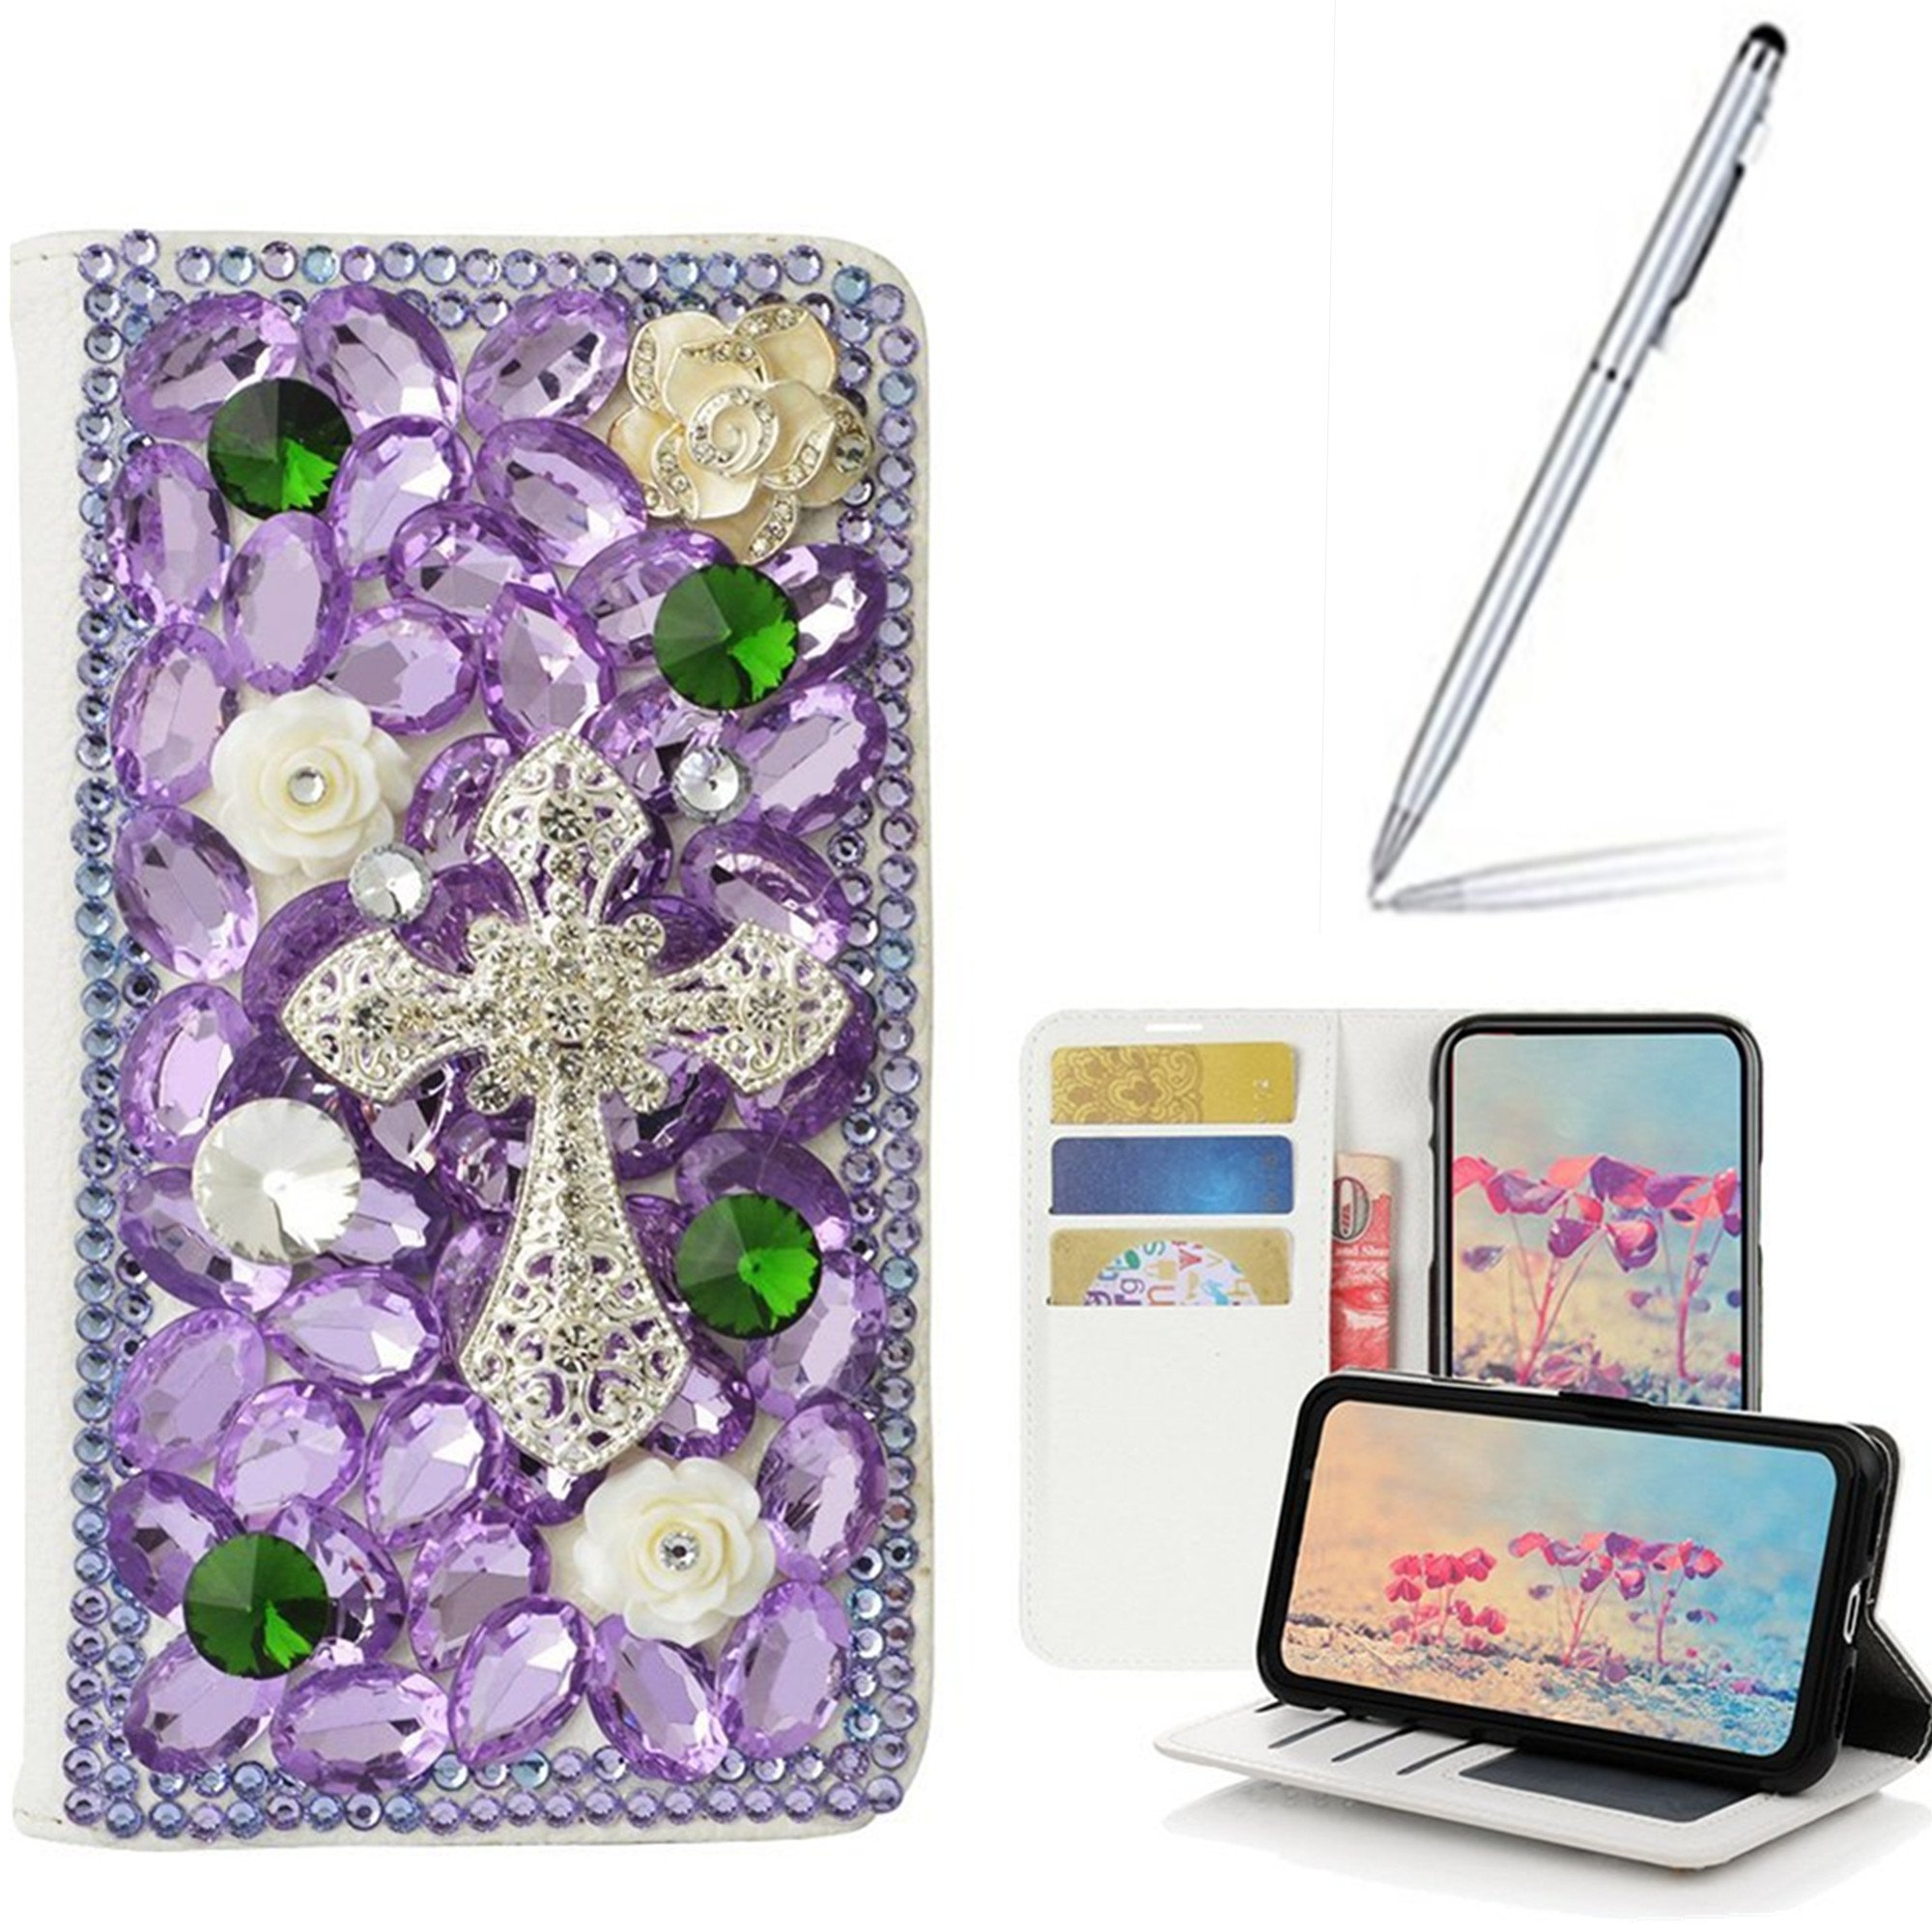 Yaheeda Alcatel Verso Case,Alcatel idealXCITE Case,Alcatel CameoX Case,Alcatel Raven LT Case with Stylus, [Stand Feature] Handmade Butterfly Wallet Premium [Glitter Luxury] Leather Cover [Card Slots]